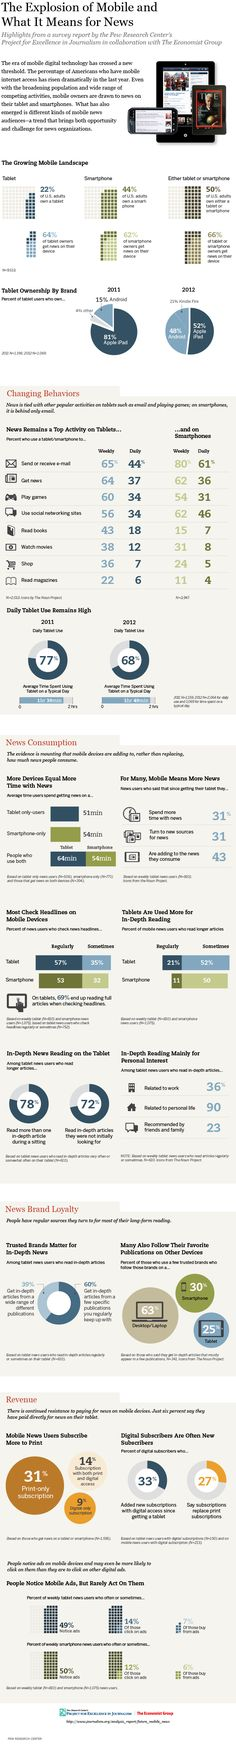 The Explosion of Mobile and What it Means for News